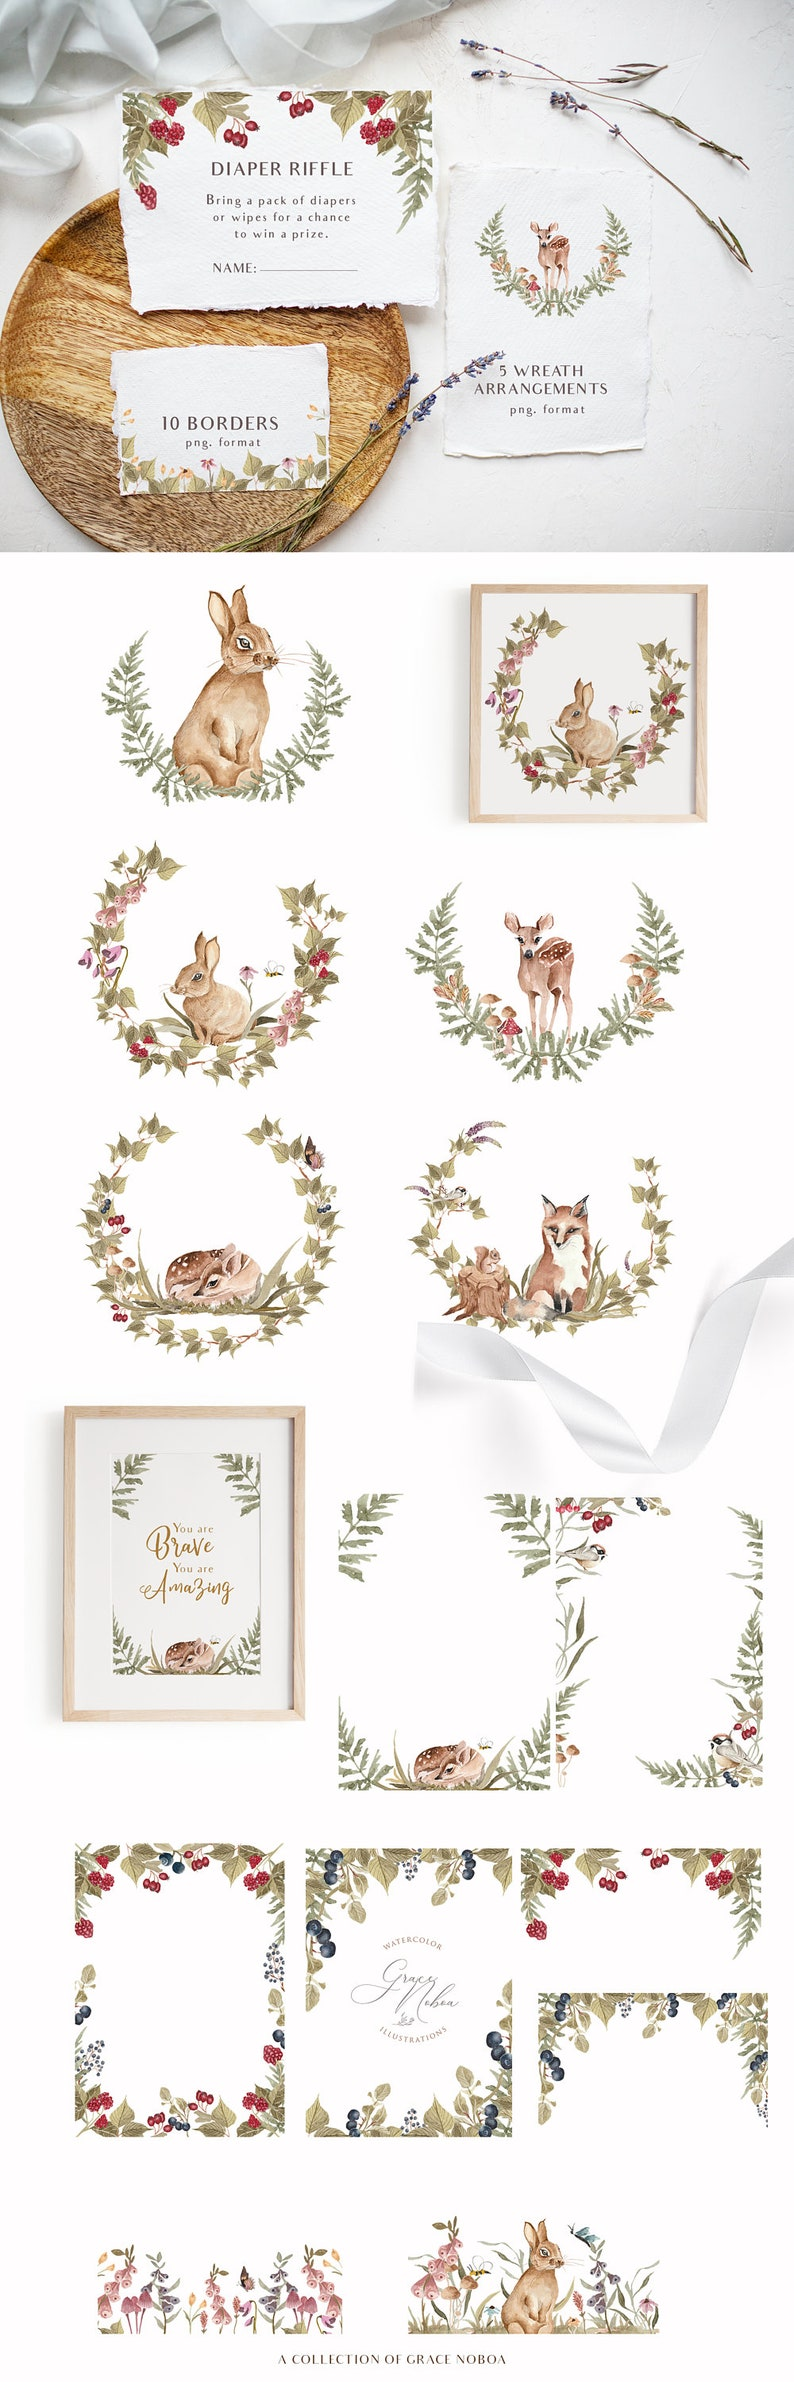 Forest cute animals clipart Woodland animal clipart Watercolor animal clipart-Baby animal clipart set Digital PNG instant download